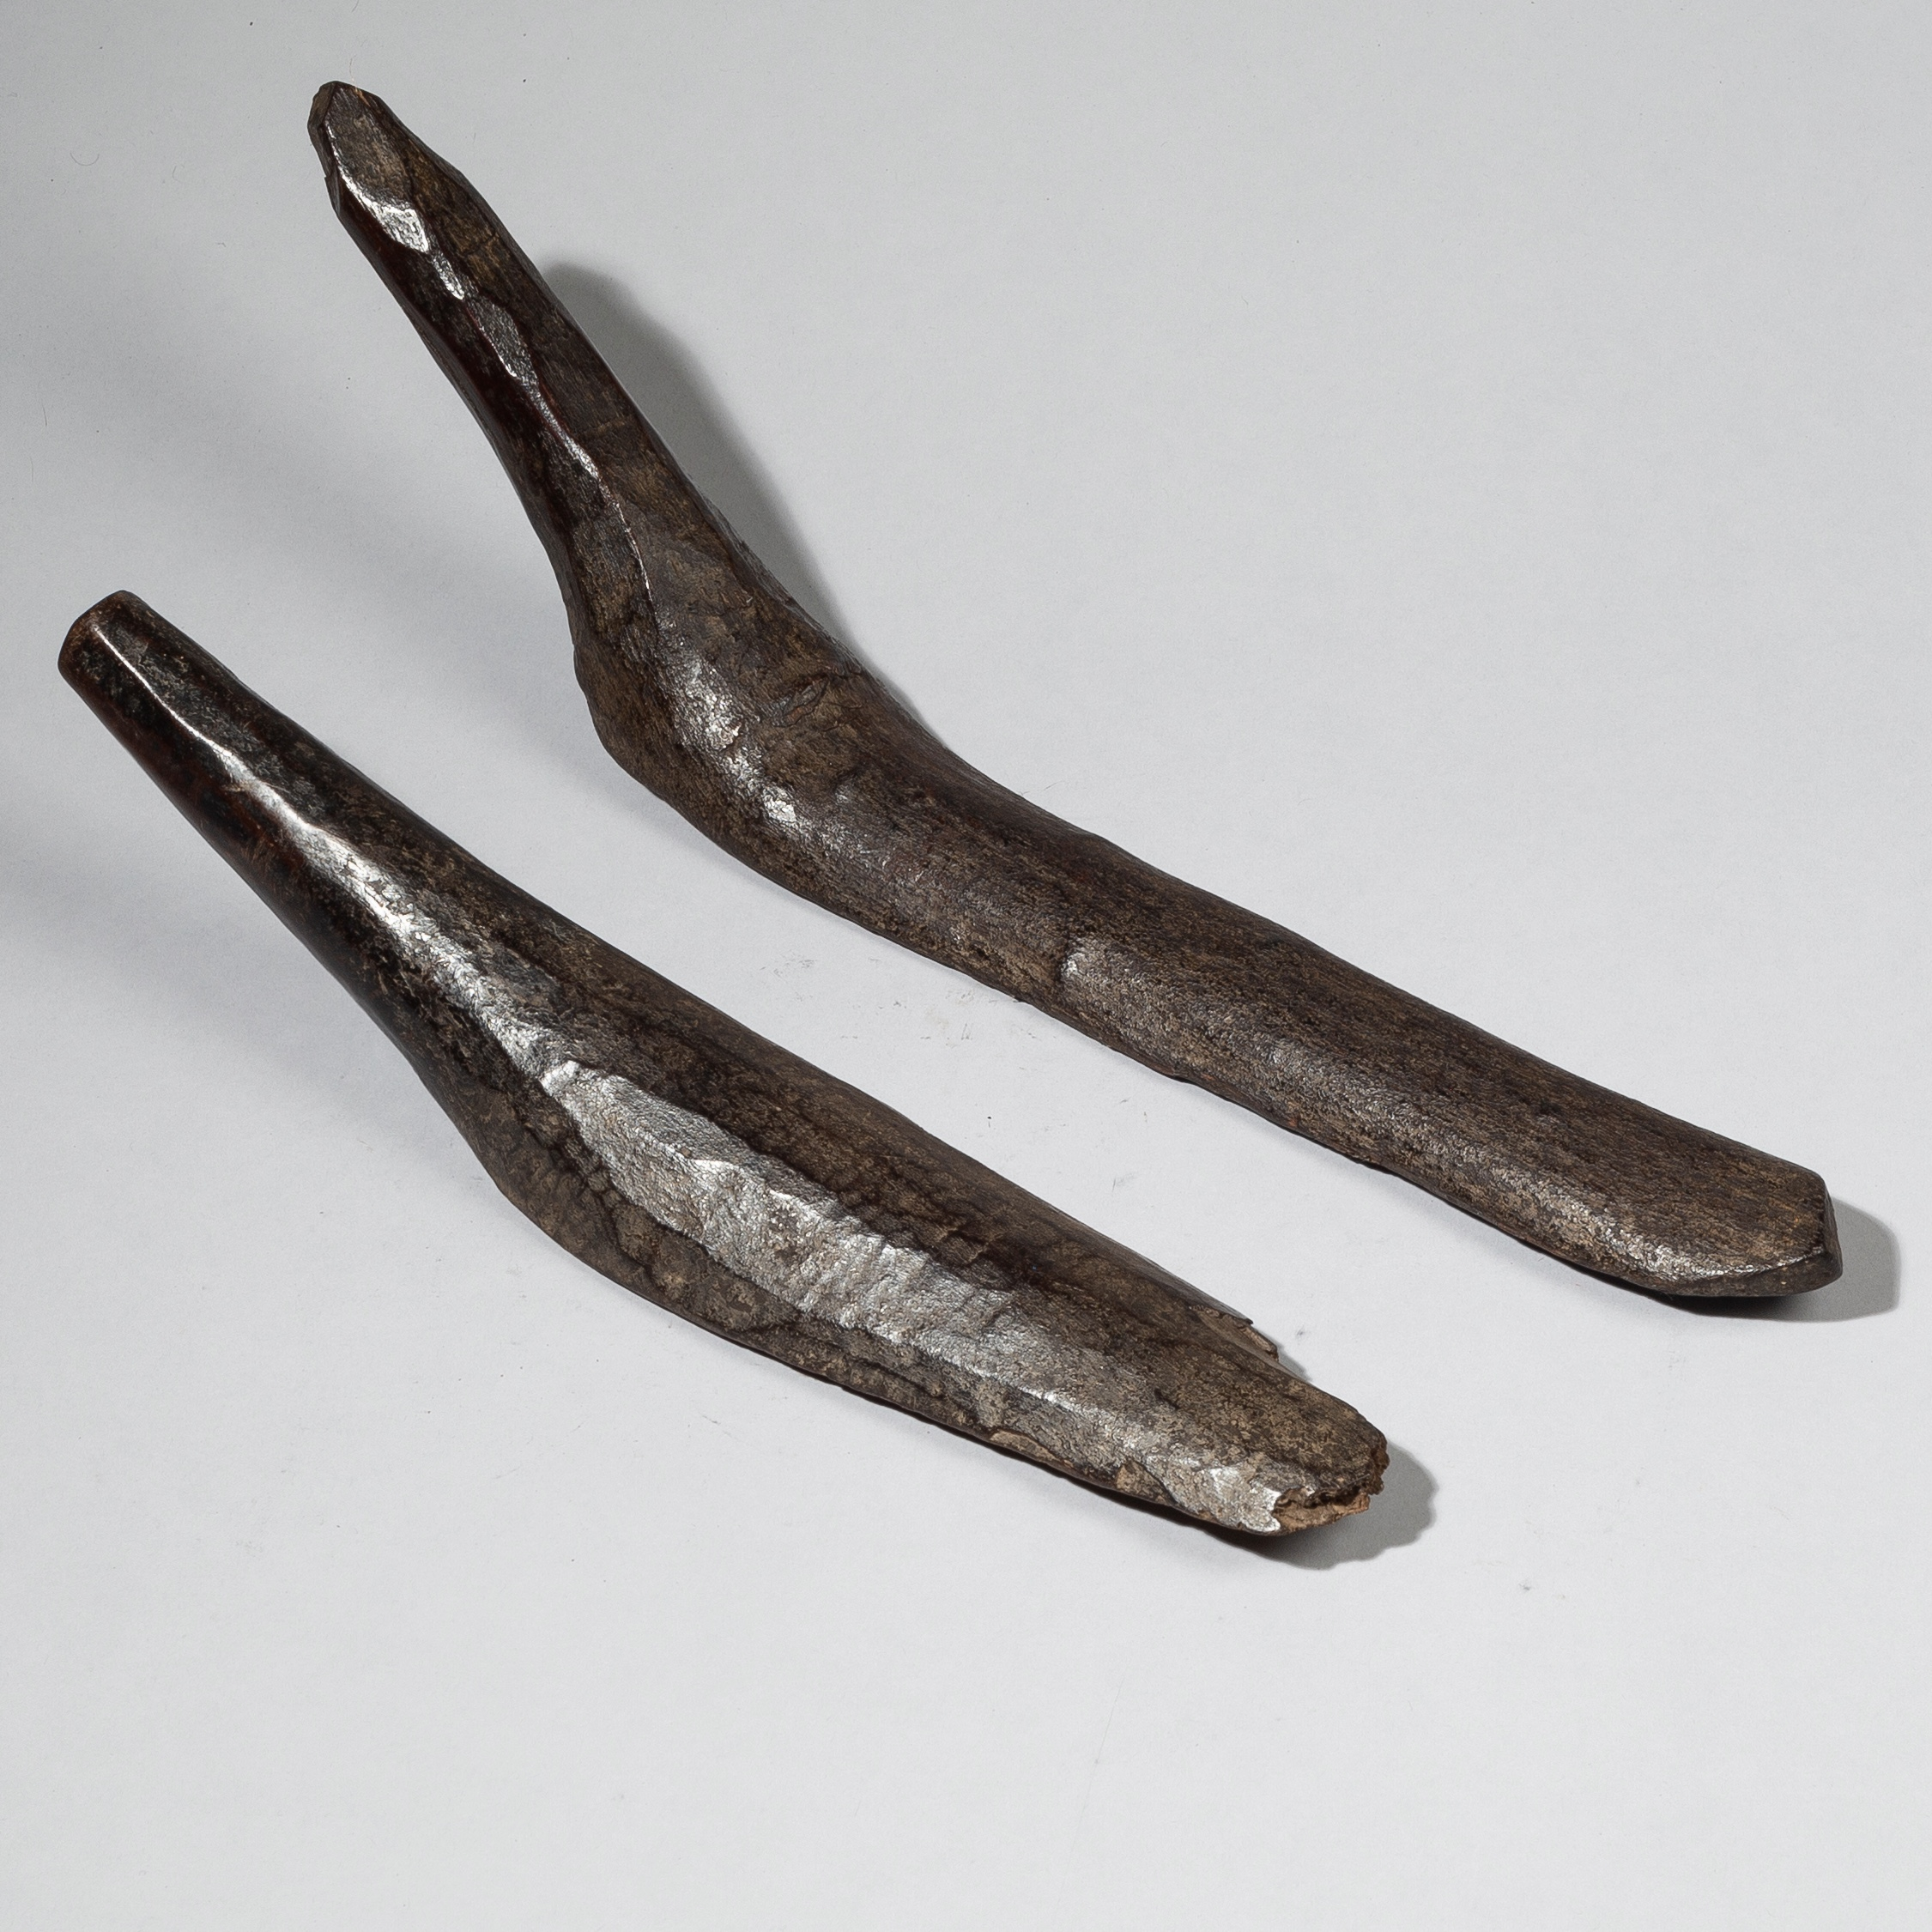 2 ANTHROPOMORPHIC GROUND SMOOTHERS FROM BURKINA FASO W. AFRICA ( No 4404)